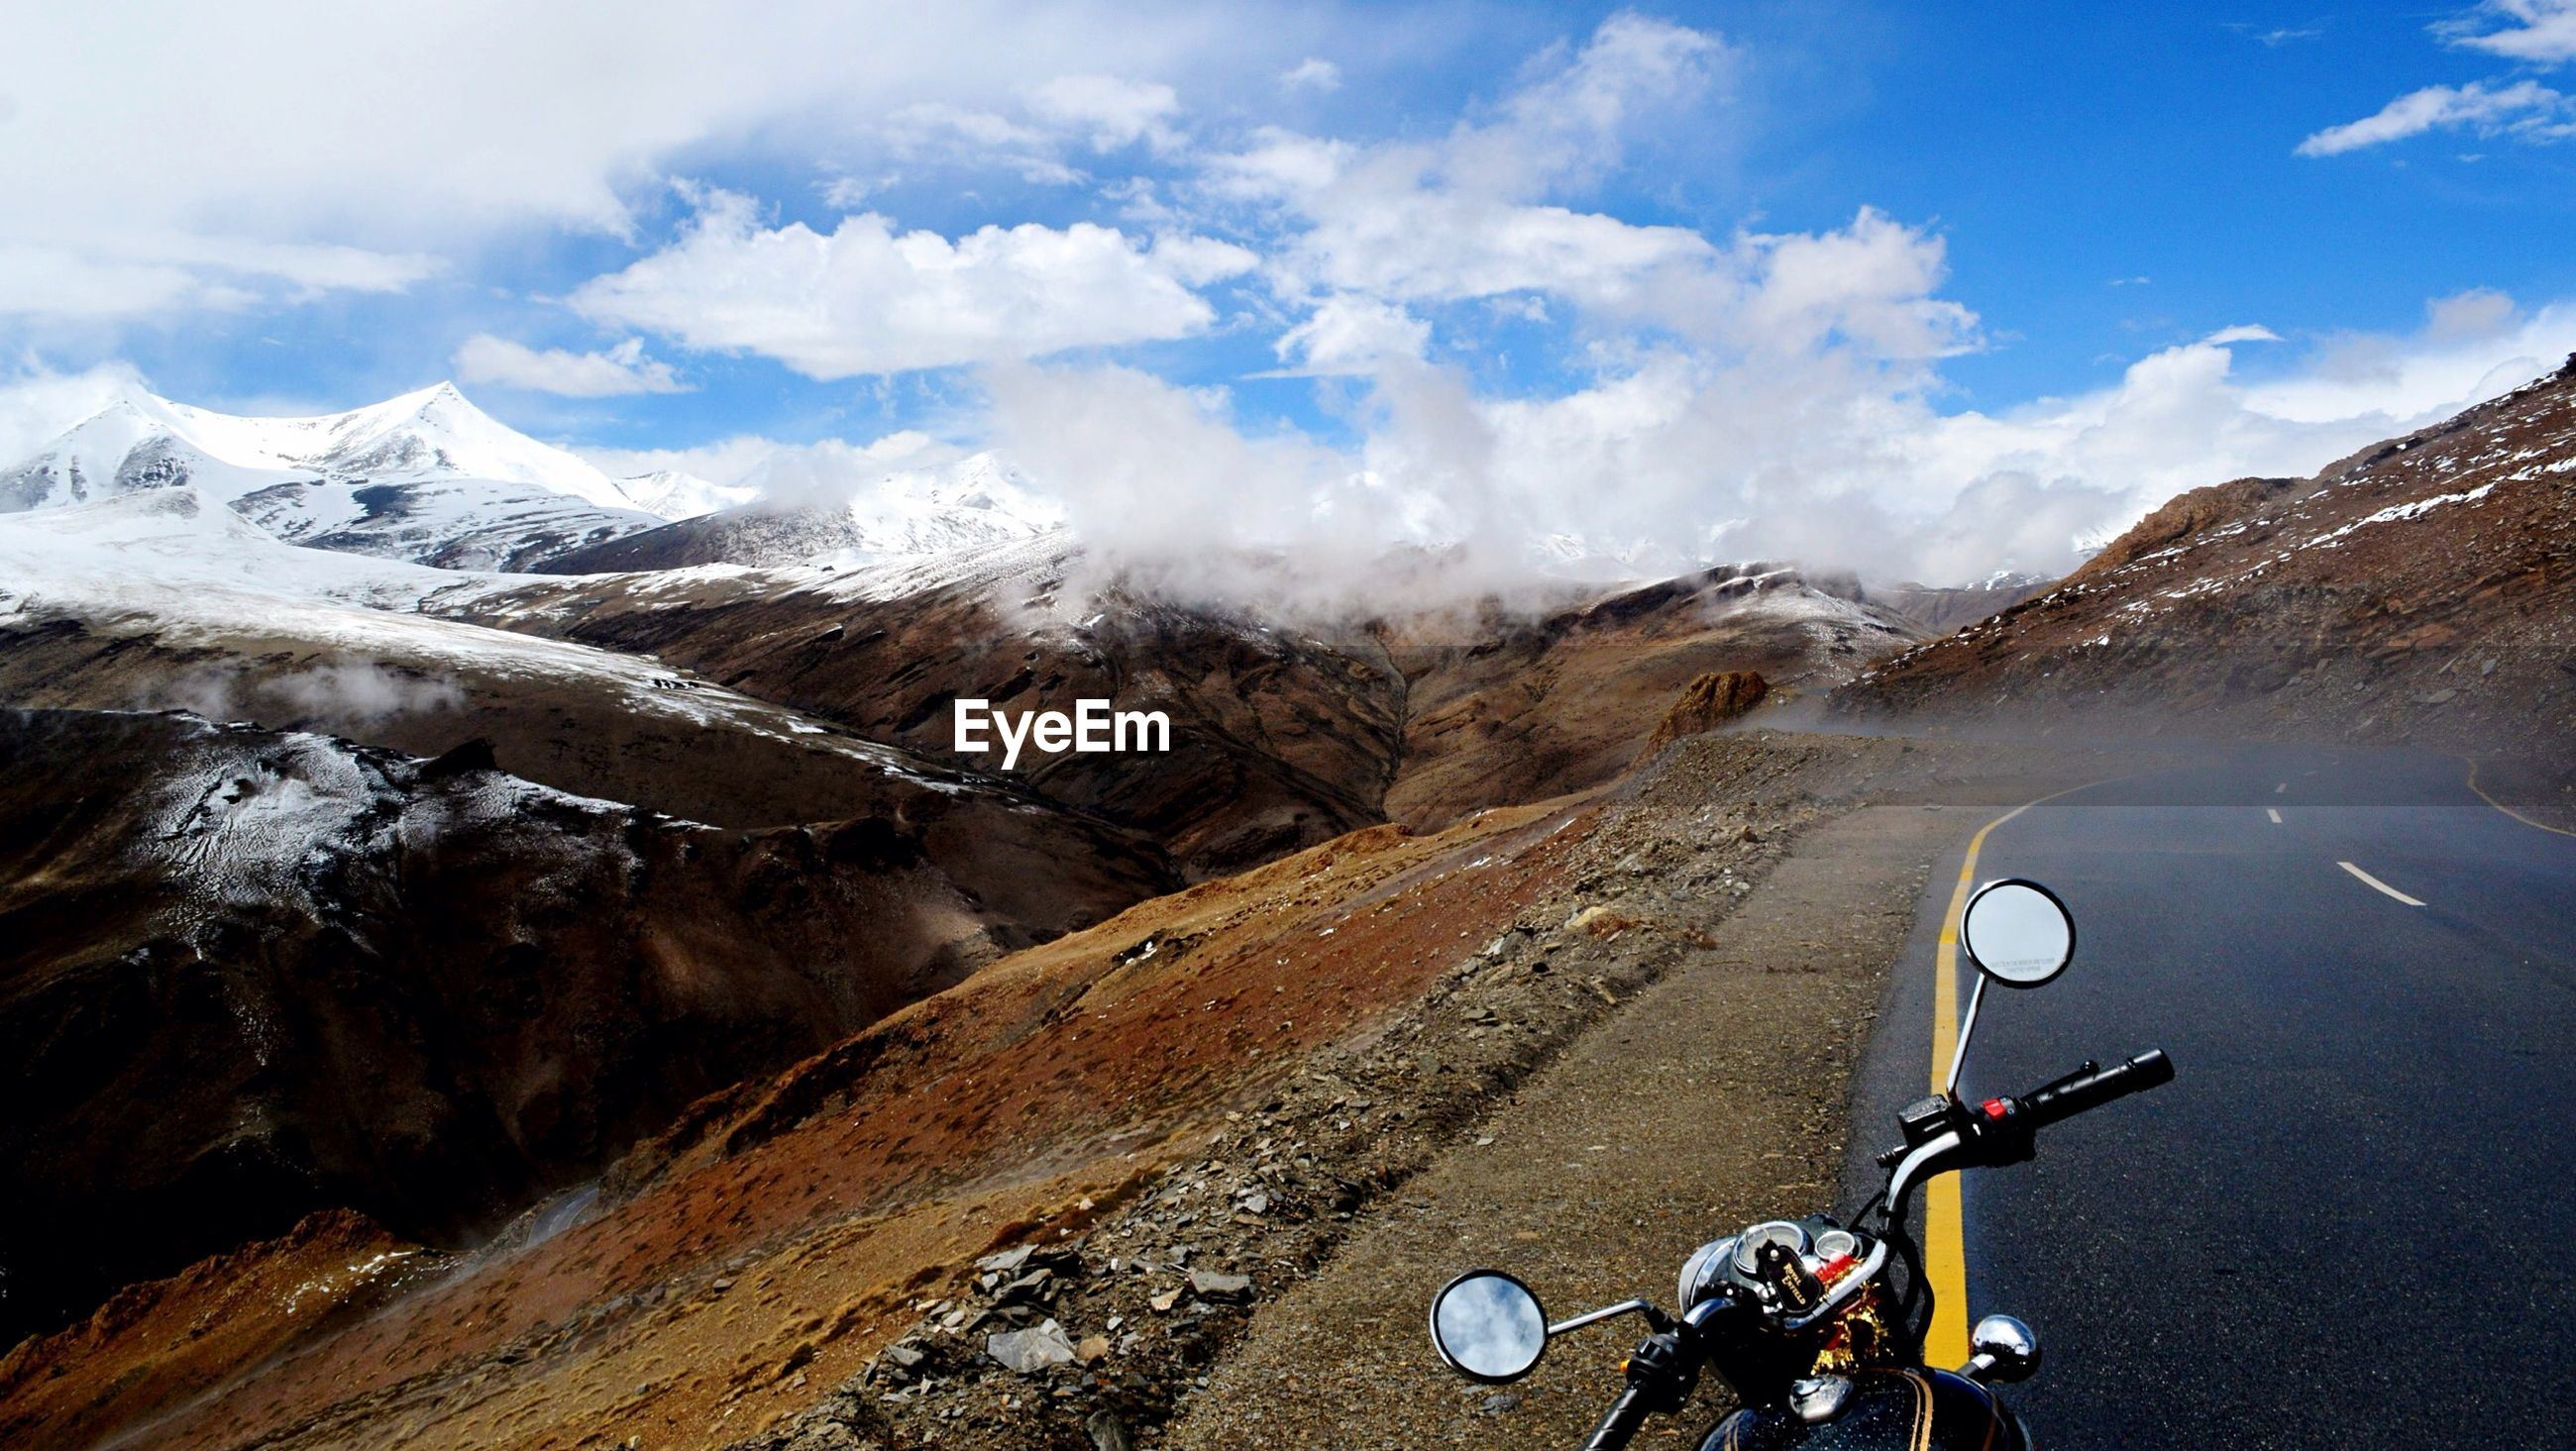 High angle view of motorcycle on street against mountains and cloudy sky